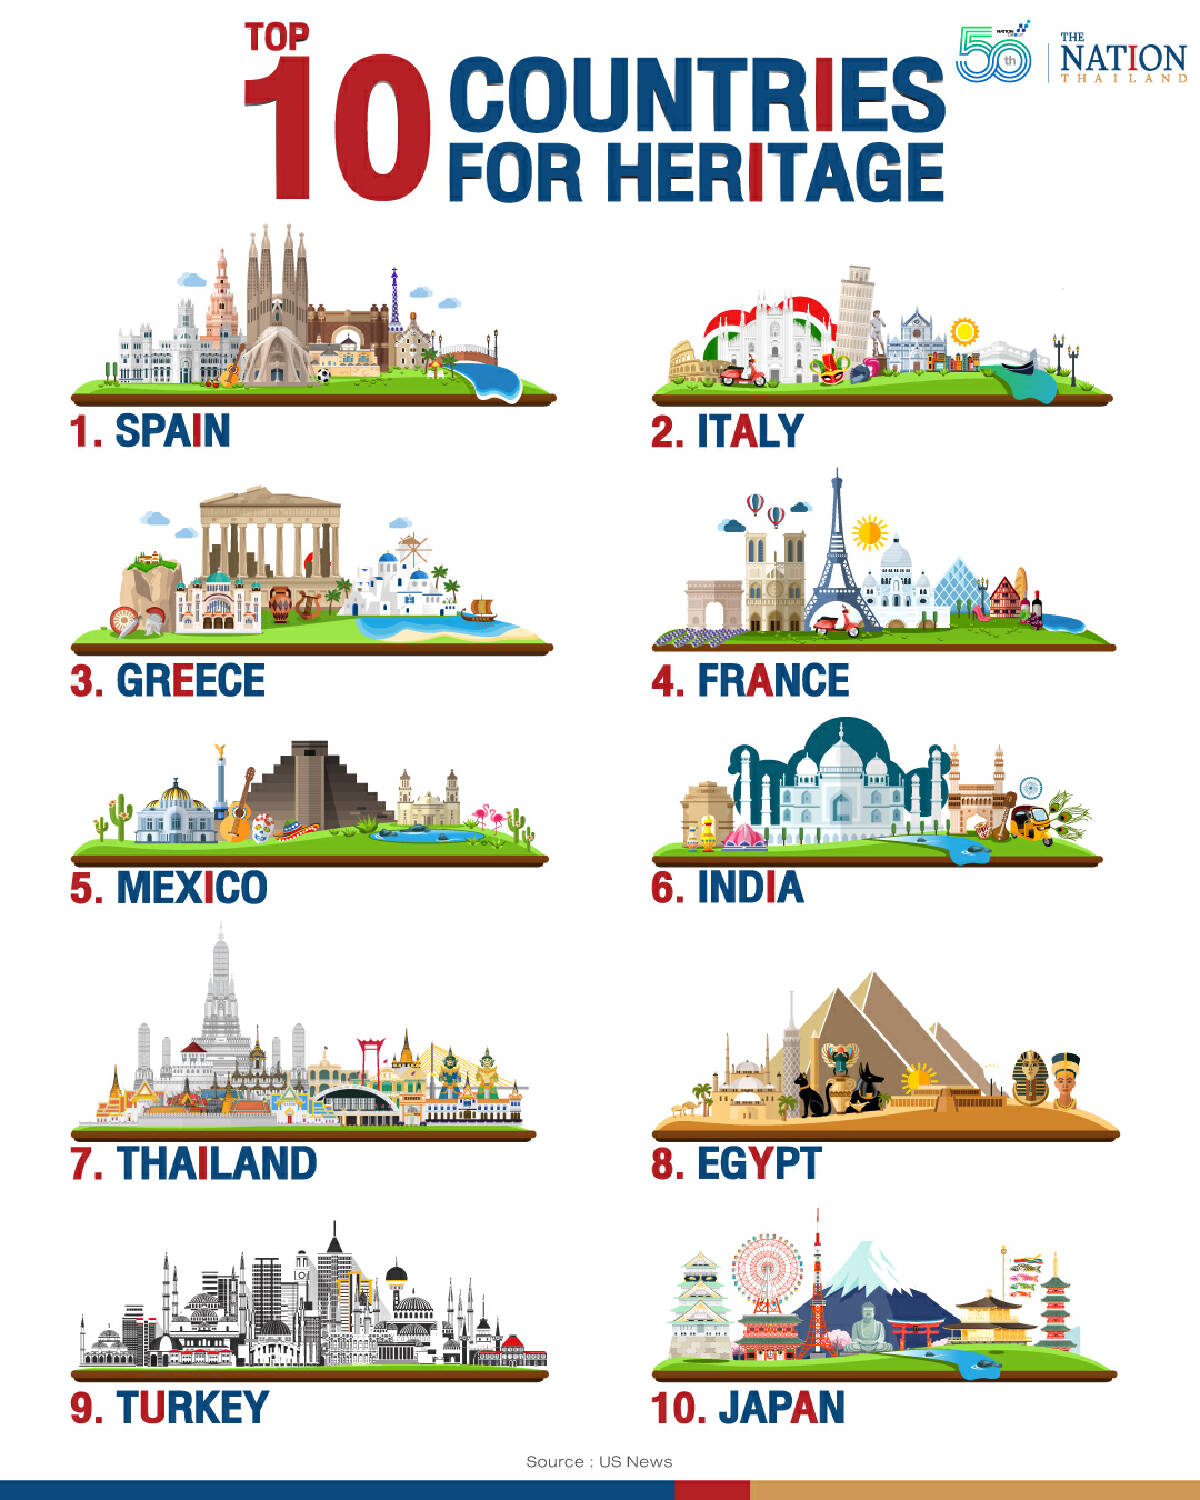 The world heritage sites in Thailand are